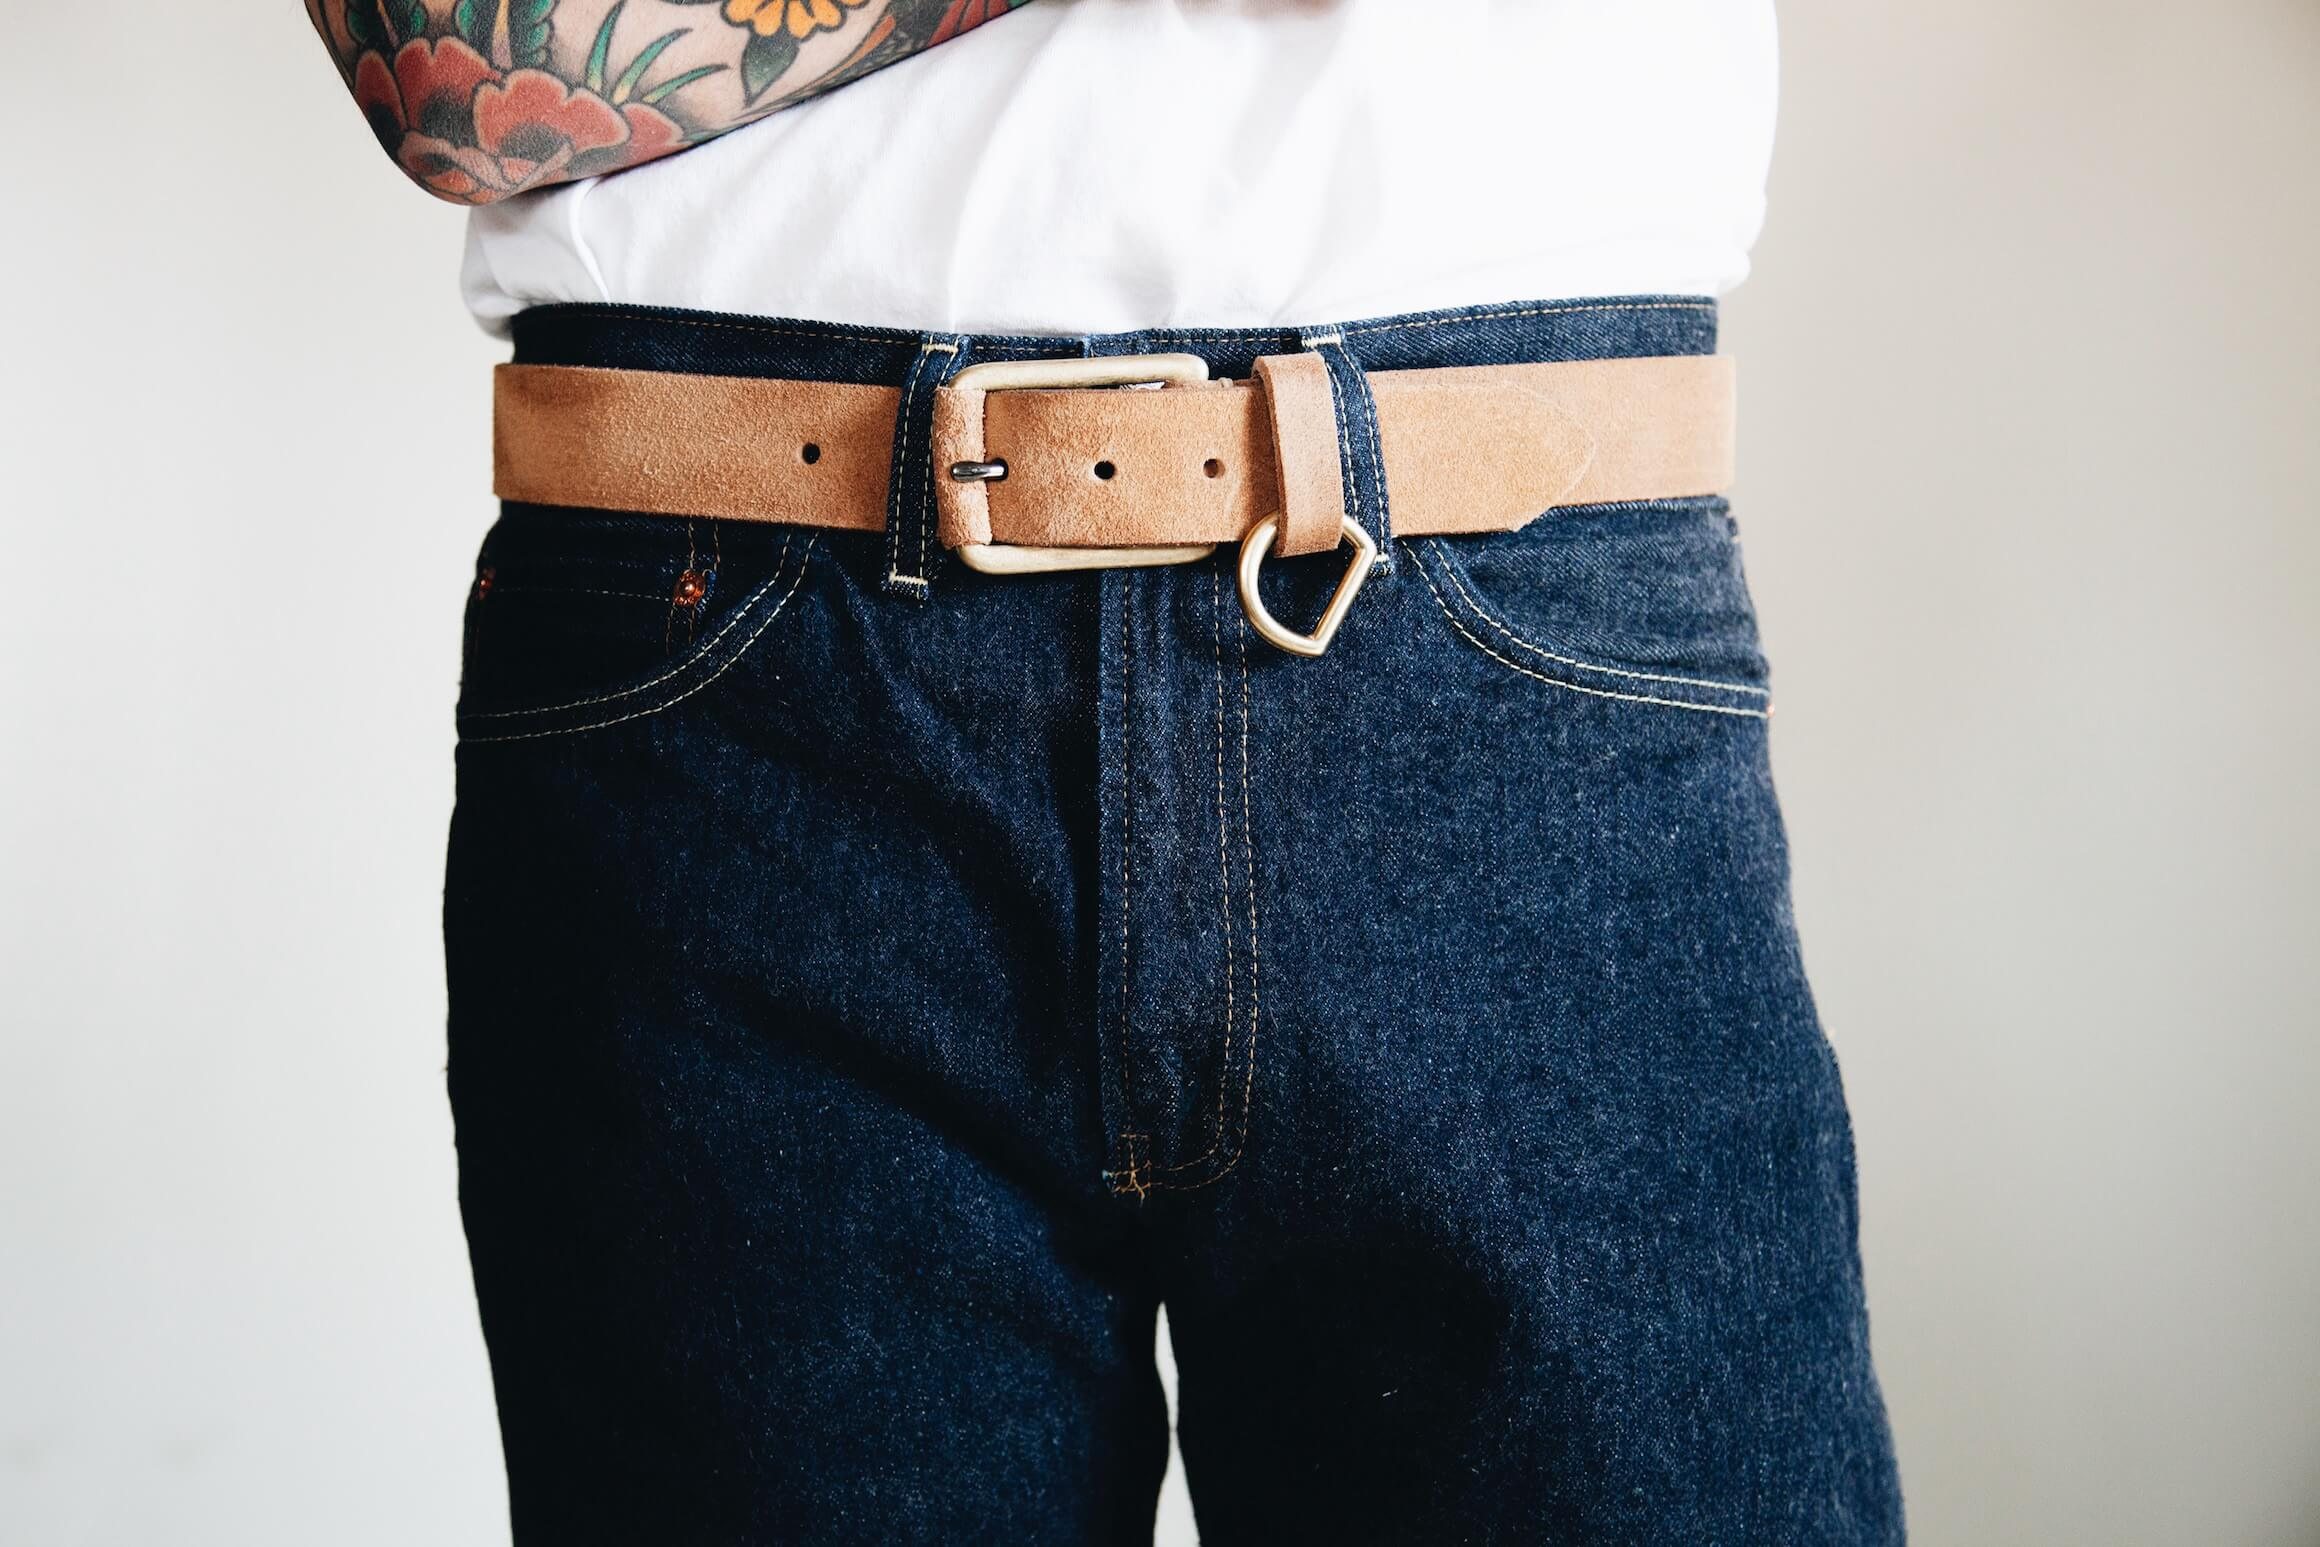 levi's vintage clothing LVC 1954 501 New Rinse jeans with yuketen belt on body